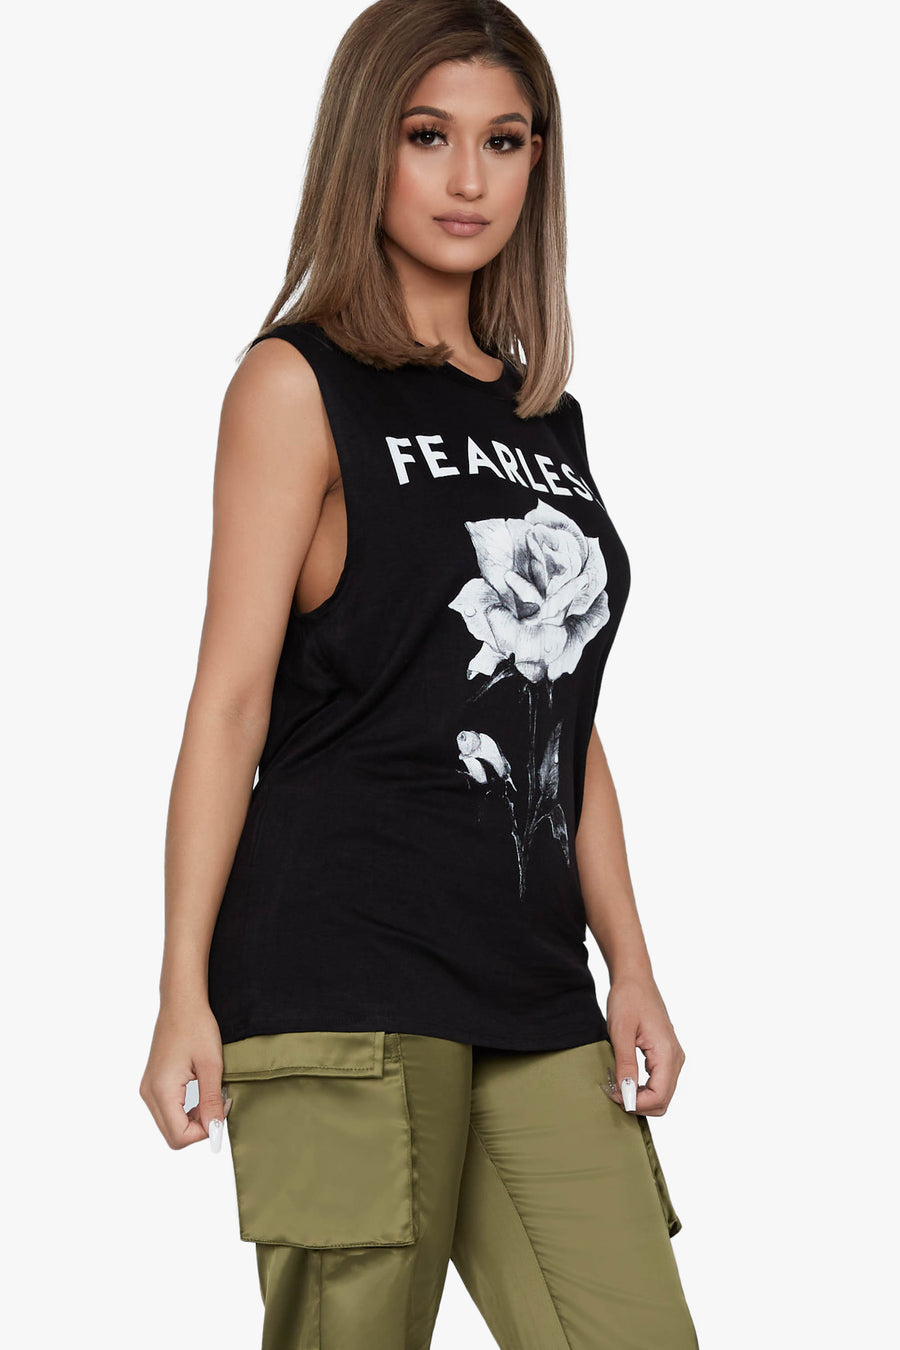 Almost Fearless Graphic Tank